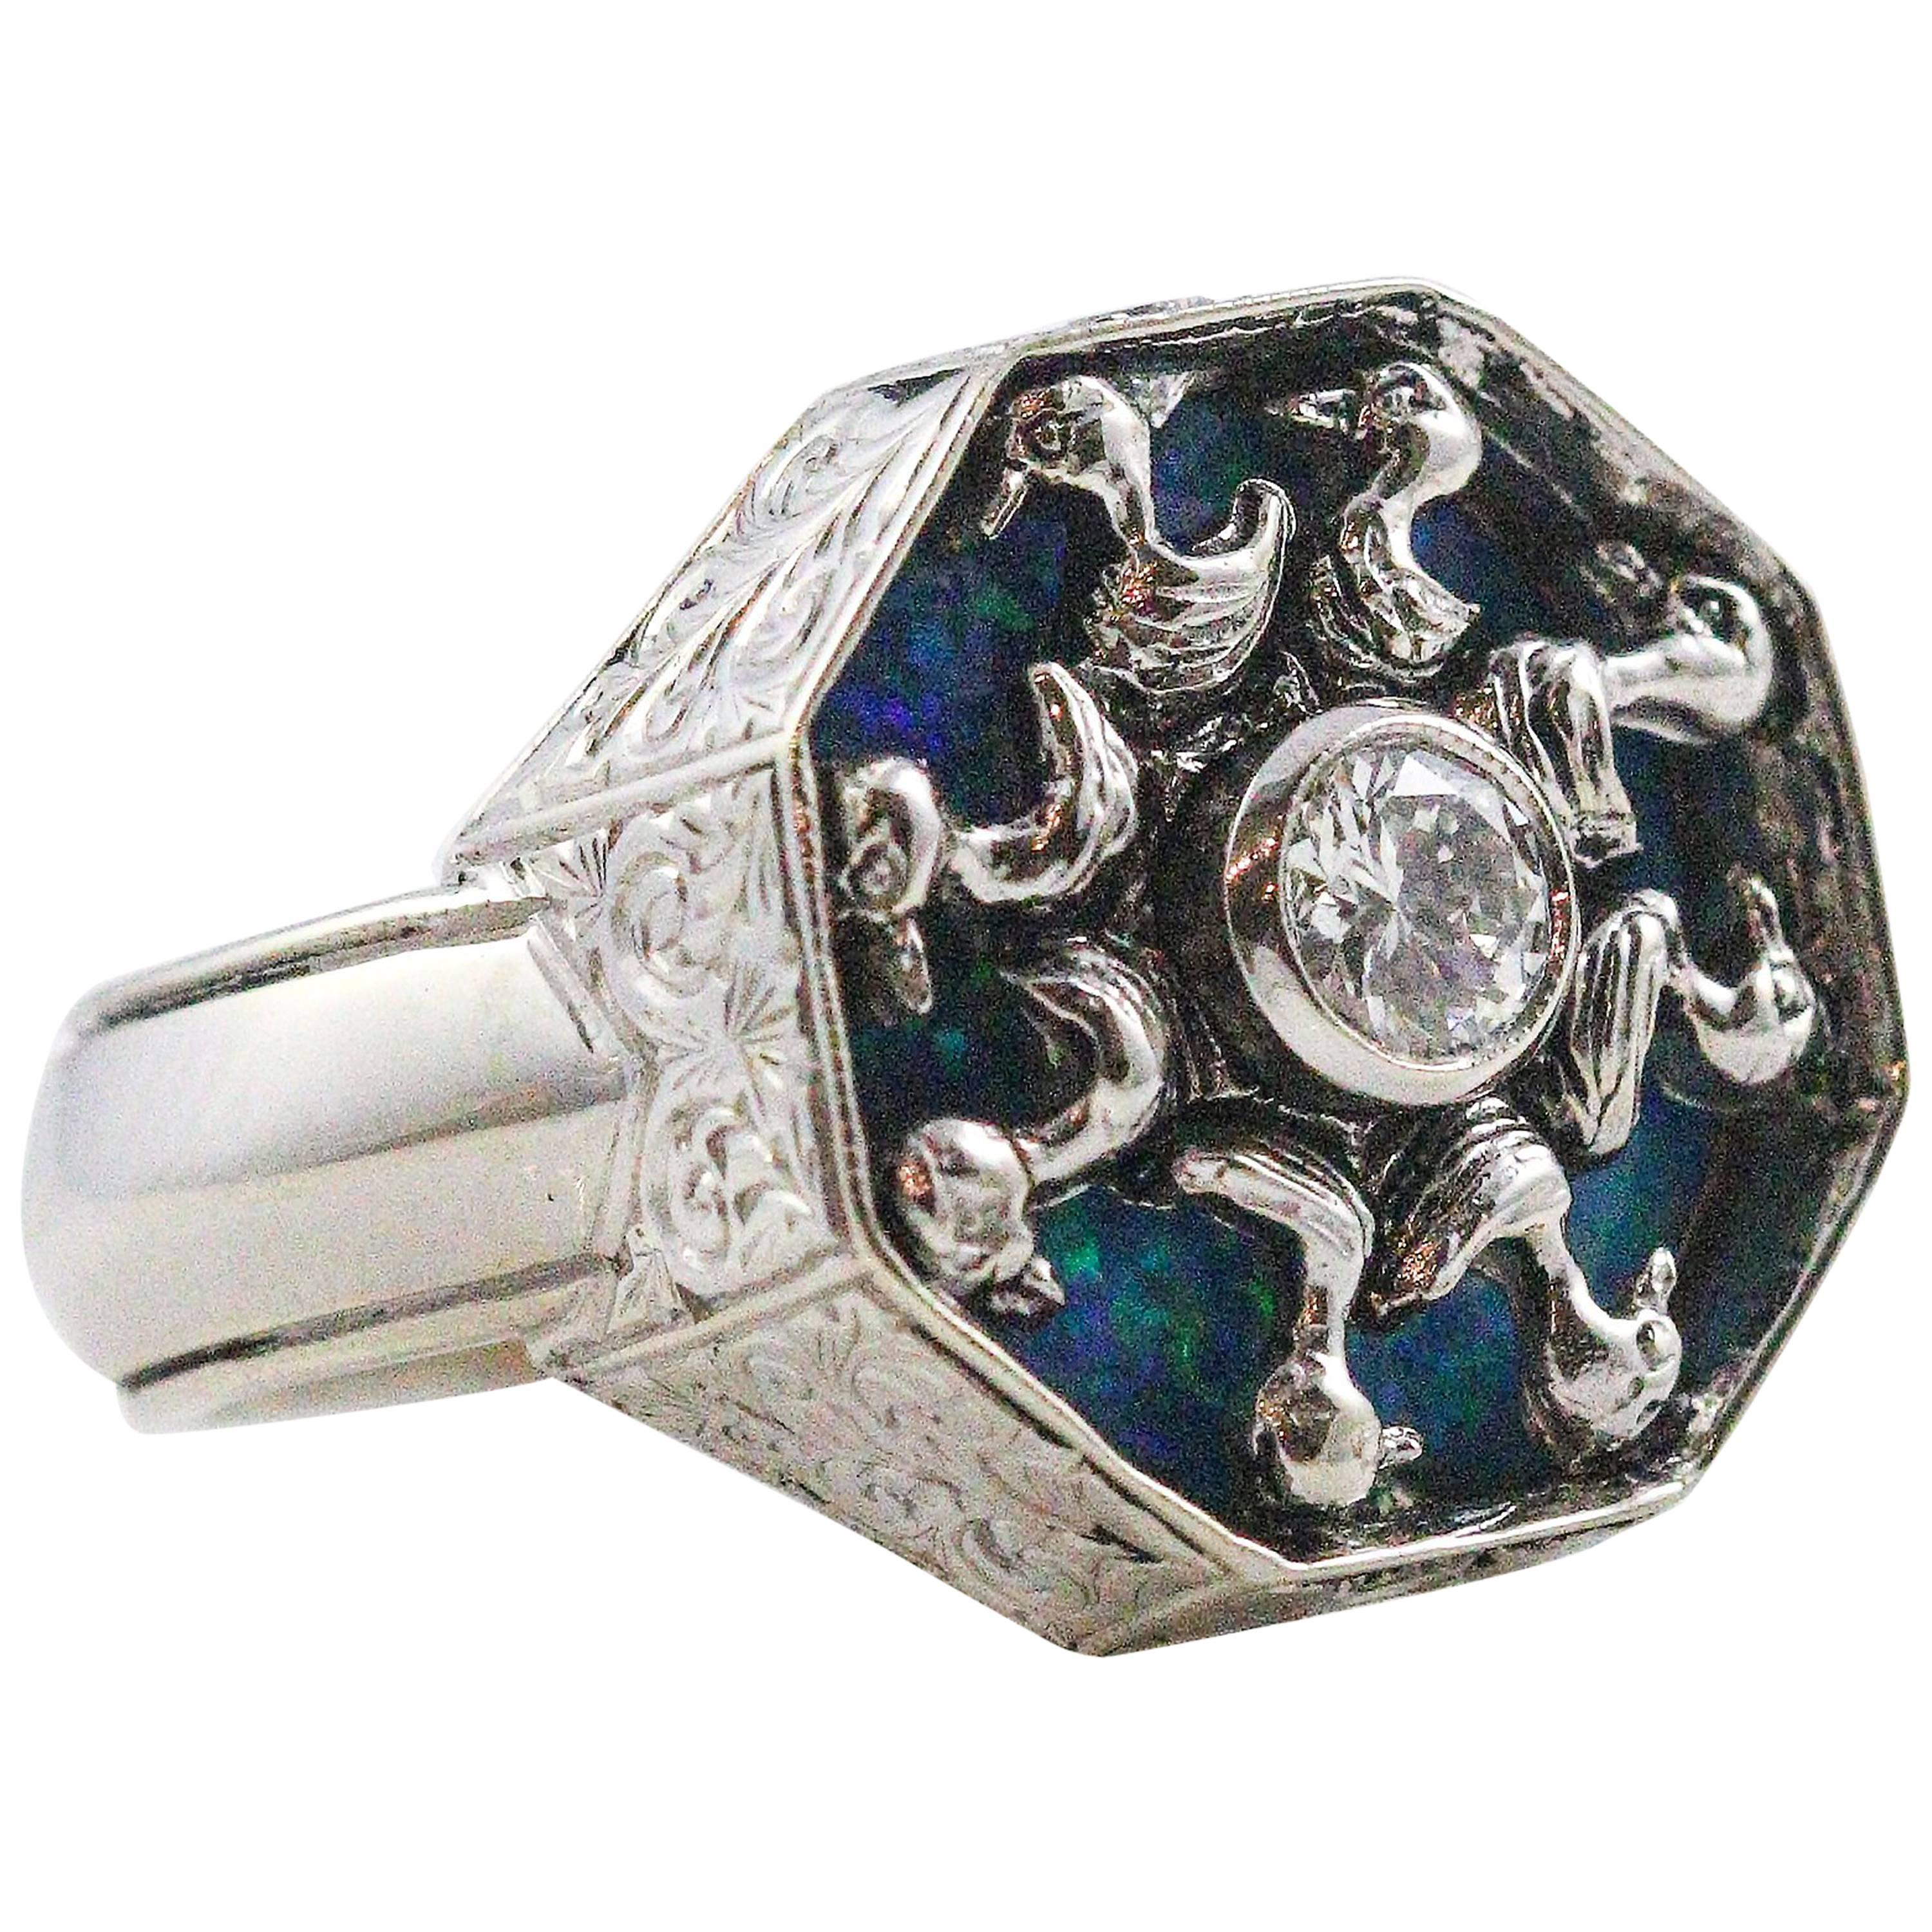 14 Karat White Gold and Diamond Ring with Opal Backing and Duck Design